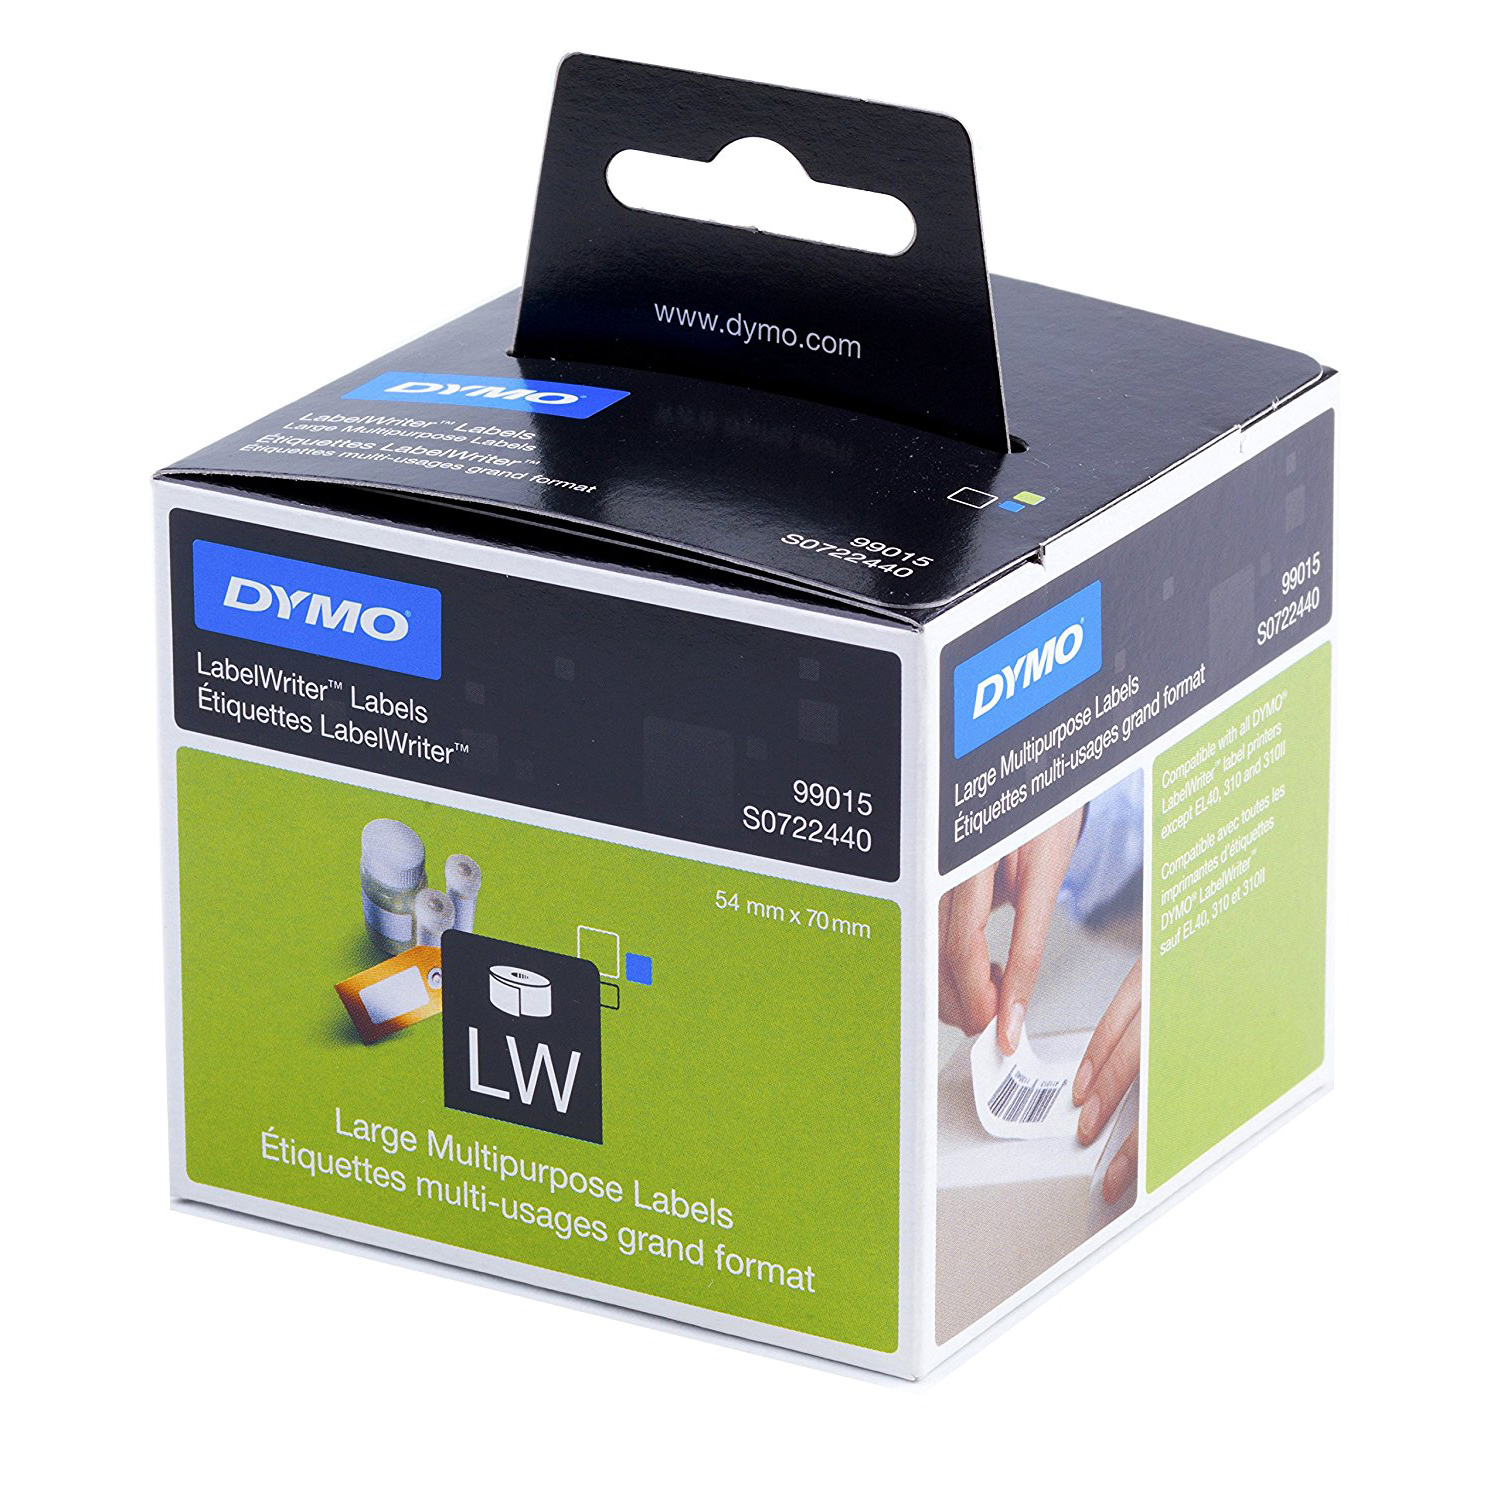 Dymo S0722440 (99015) LabelWriter Large Multipurpose Labels 54mm x 70mm - Black on White (roll)